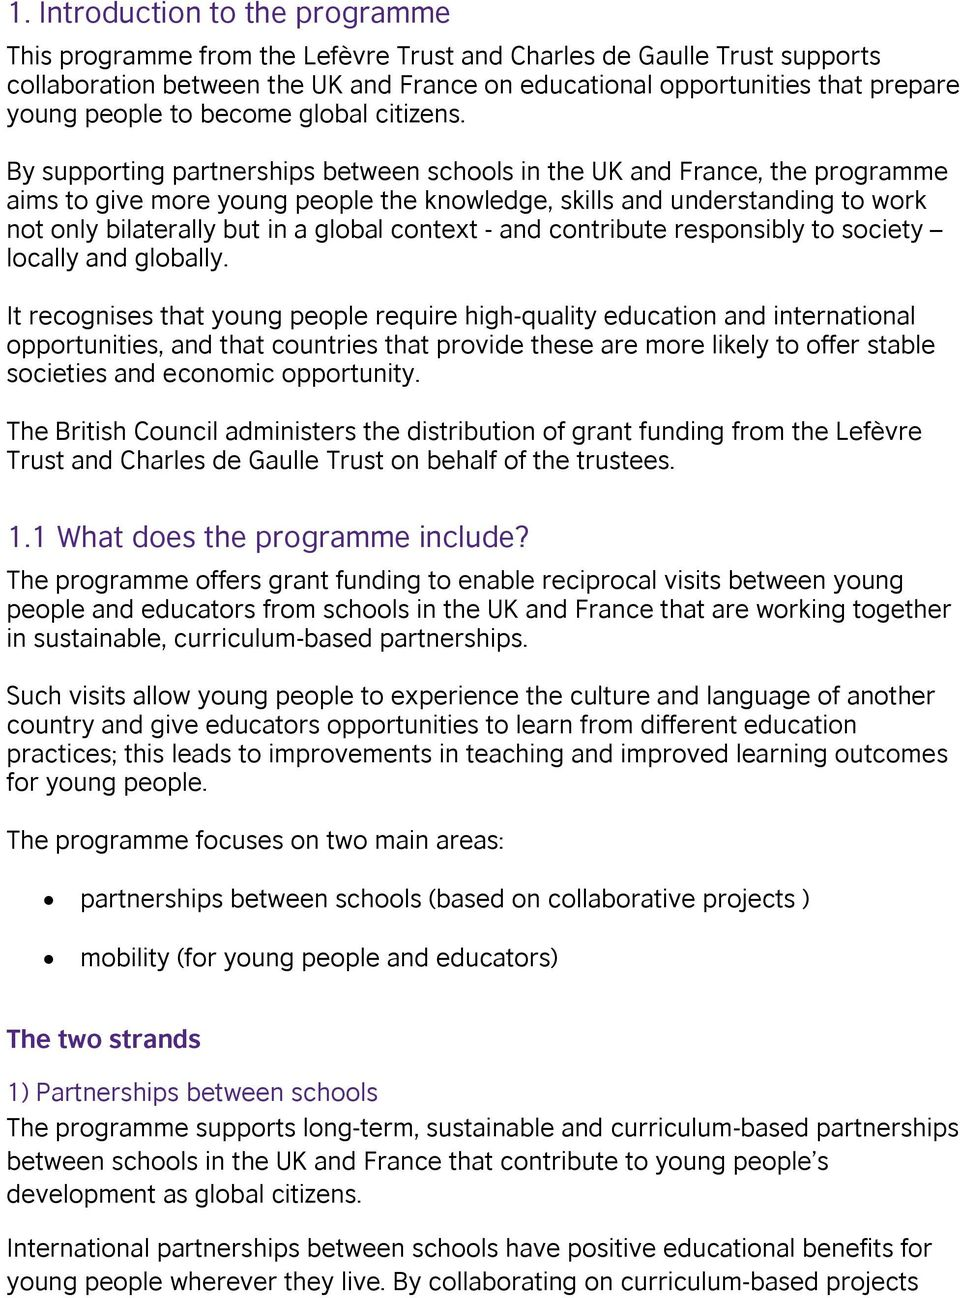 By supporting partnerships between schools in the UK and France, the programme aims to give more young people the knowledge, skills and understanding to work not only bilaterally but in a global